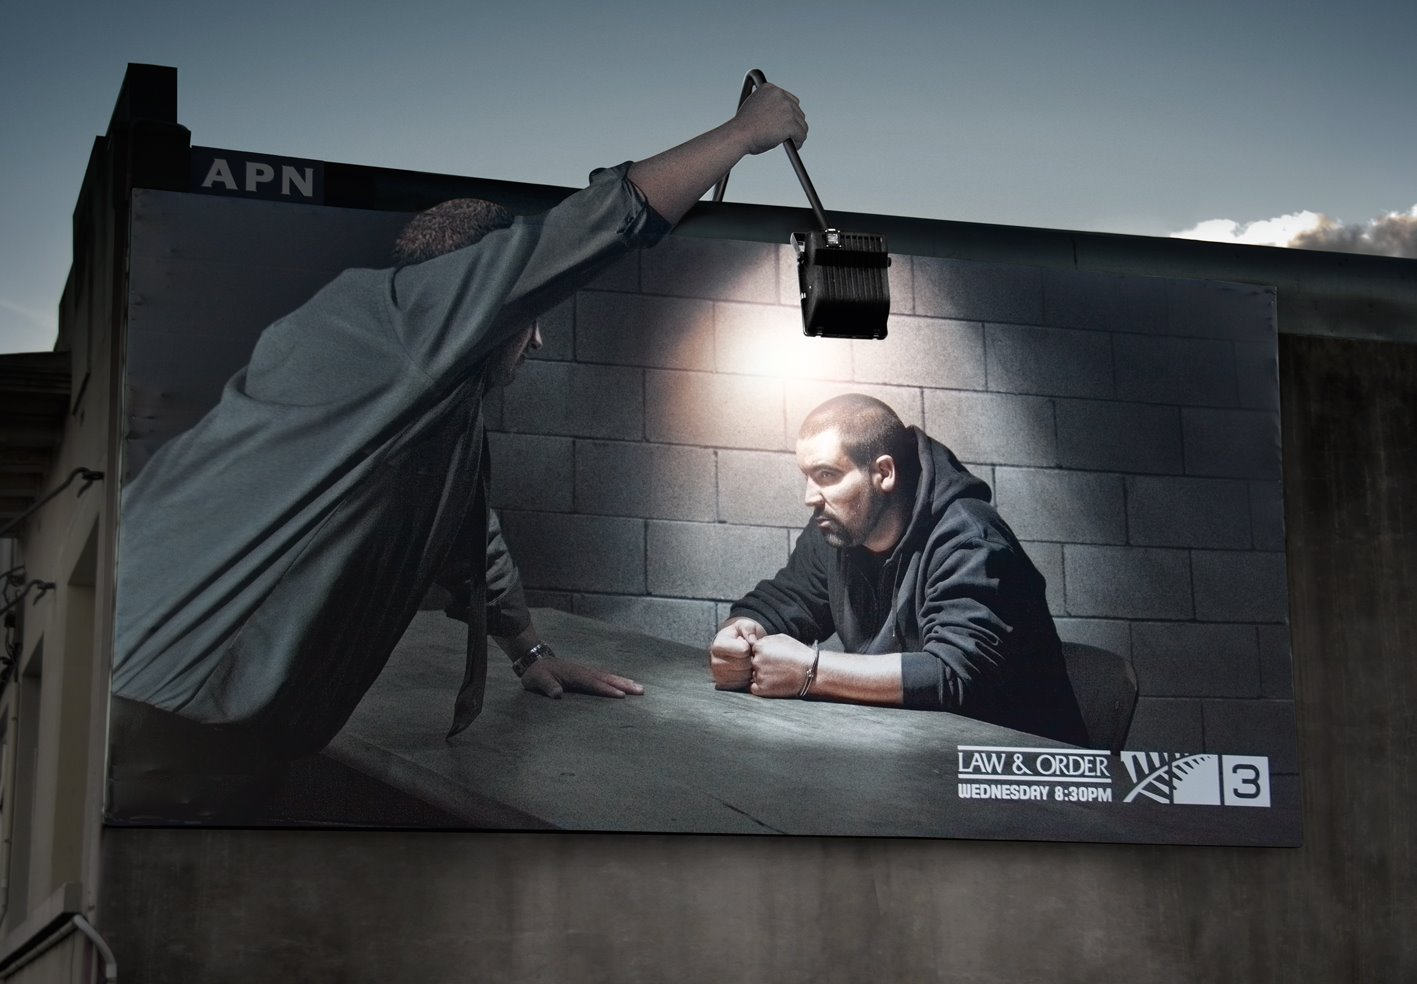 Law and Order Advert